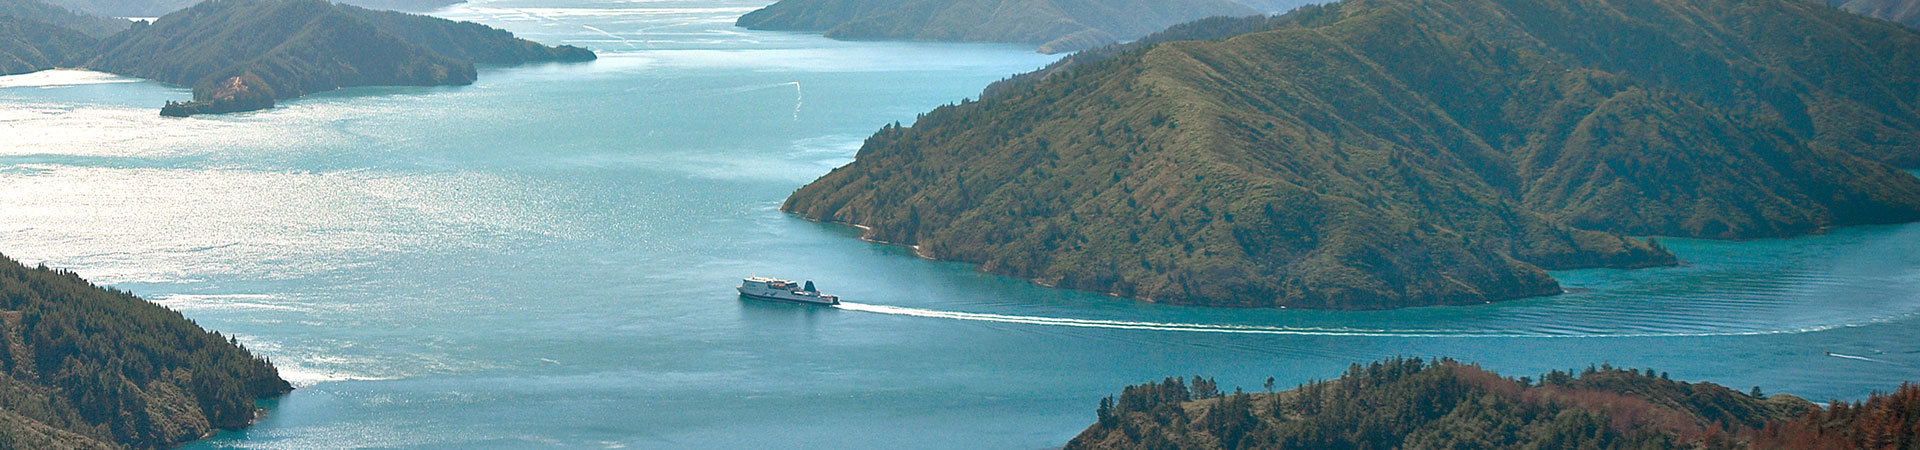 Interislander Cook Strait NZ